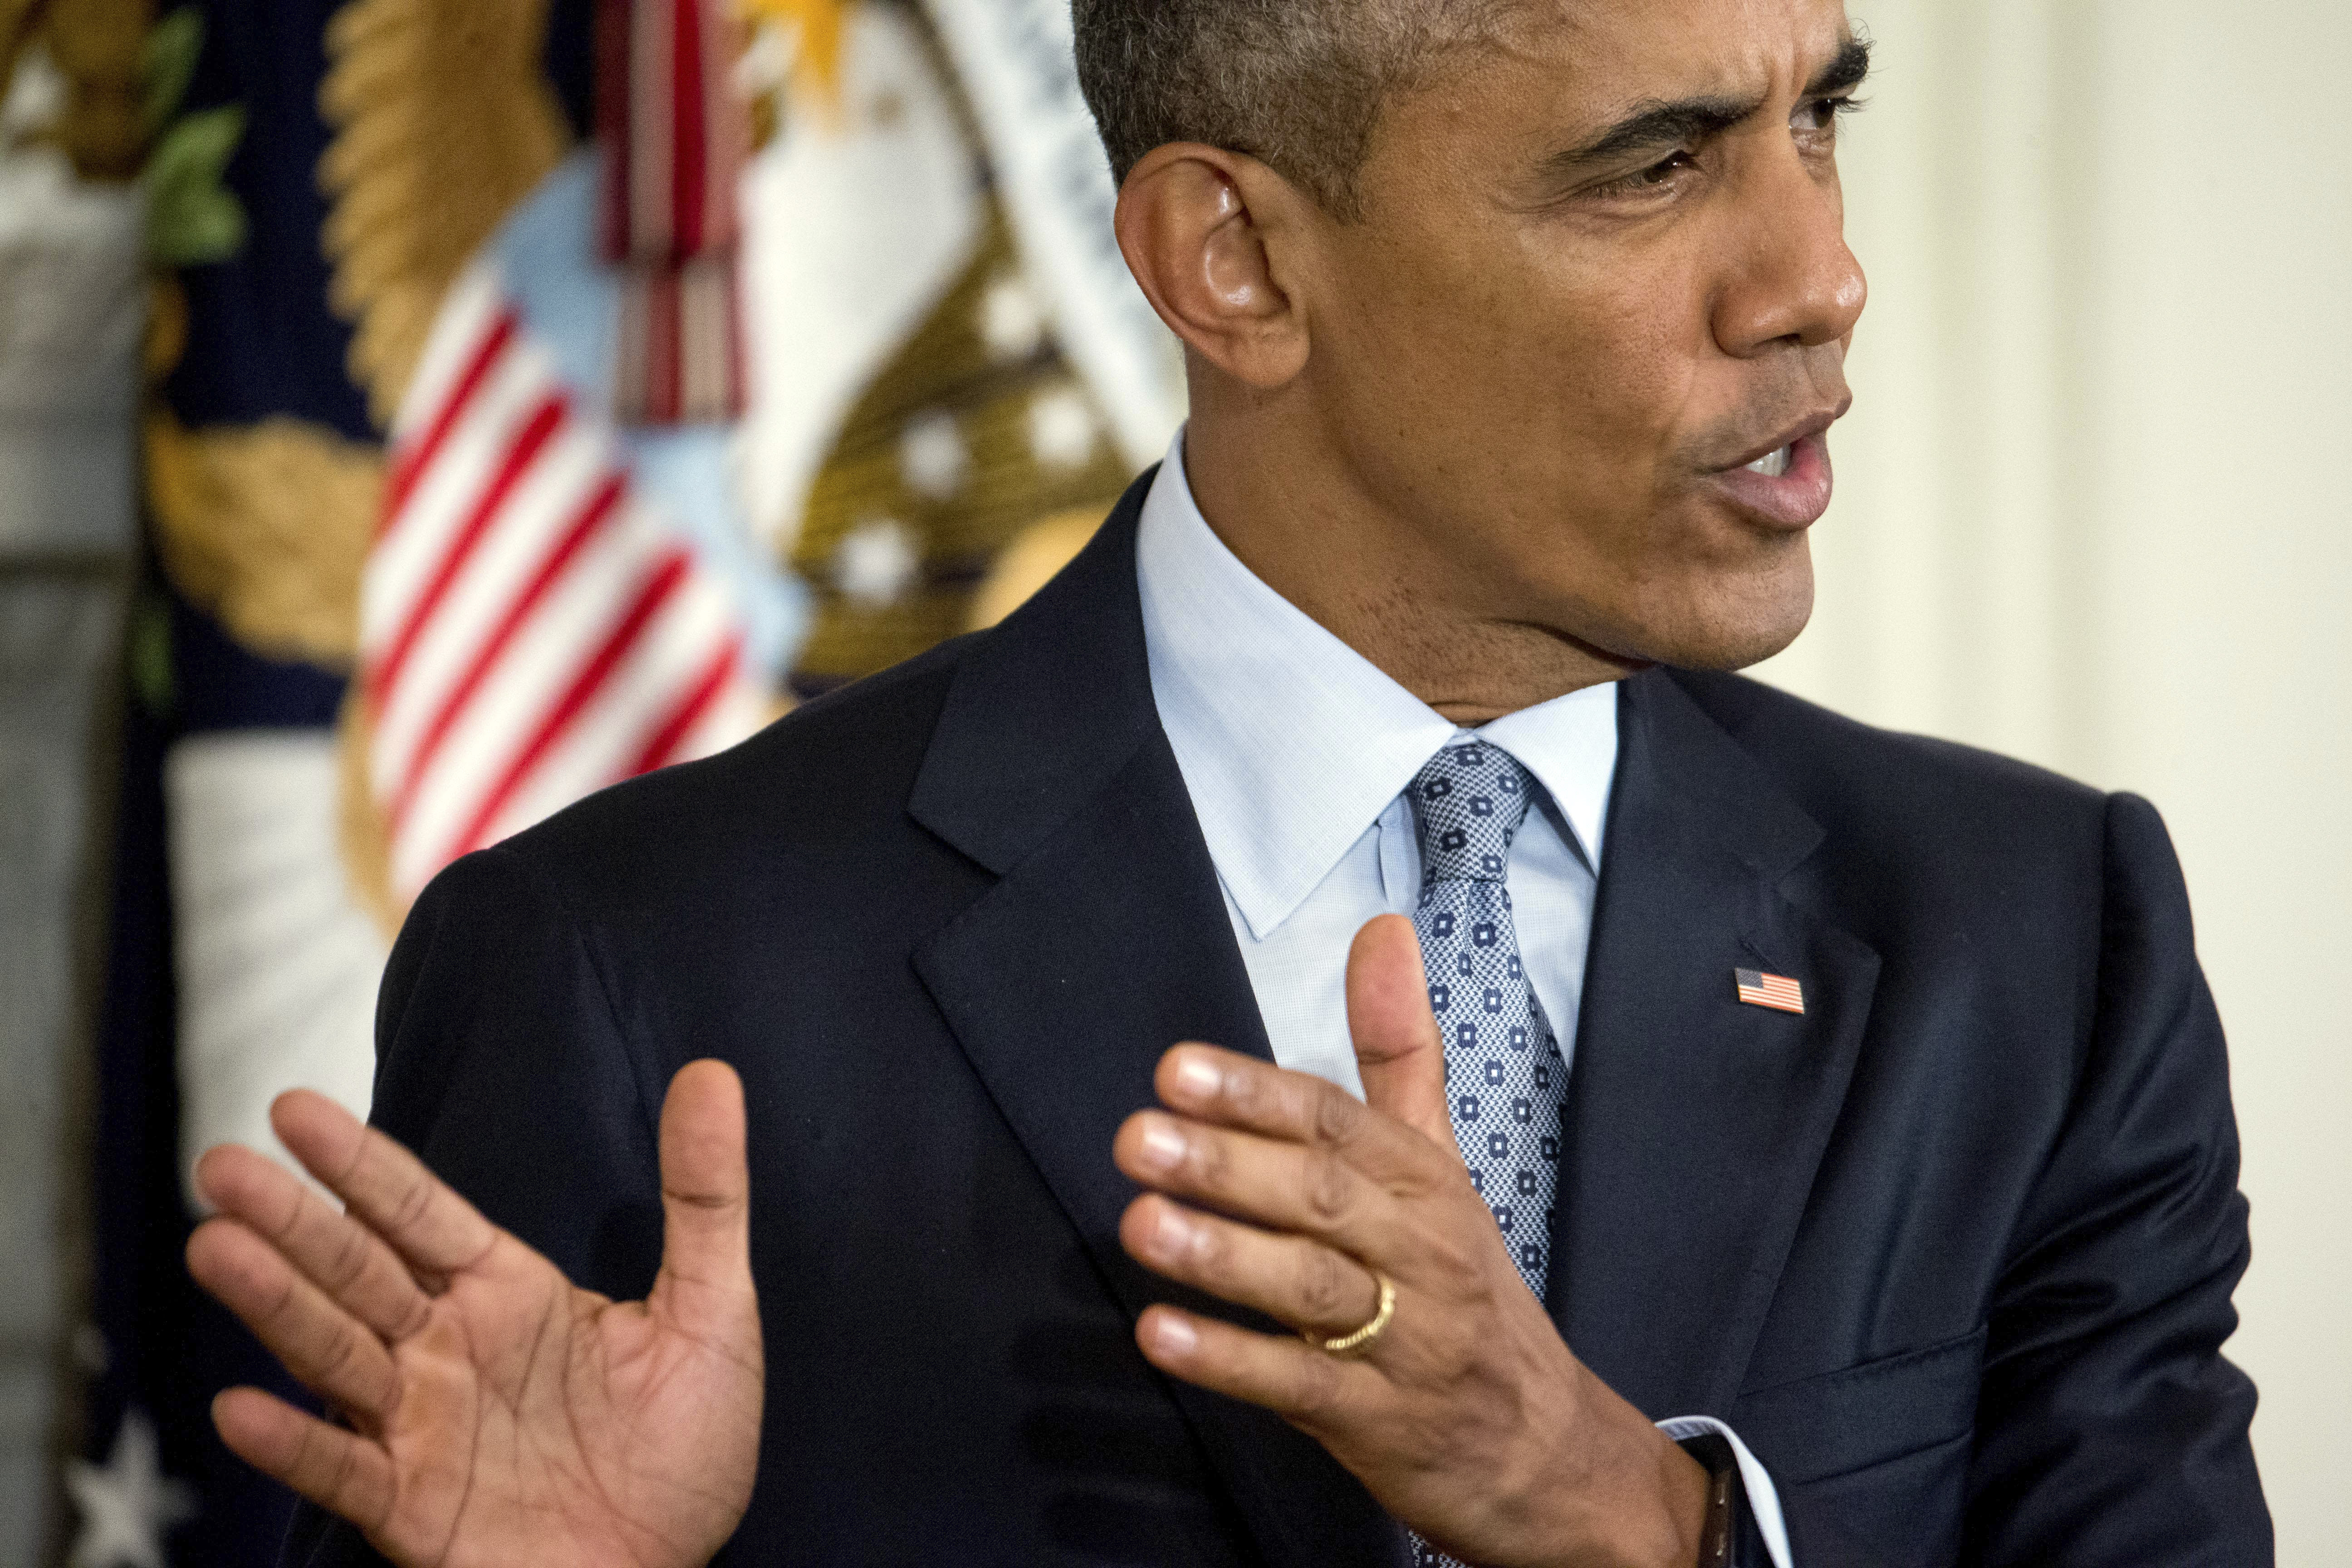 Obama: Trade pact will open new markets for US farmers